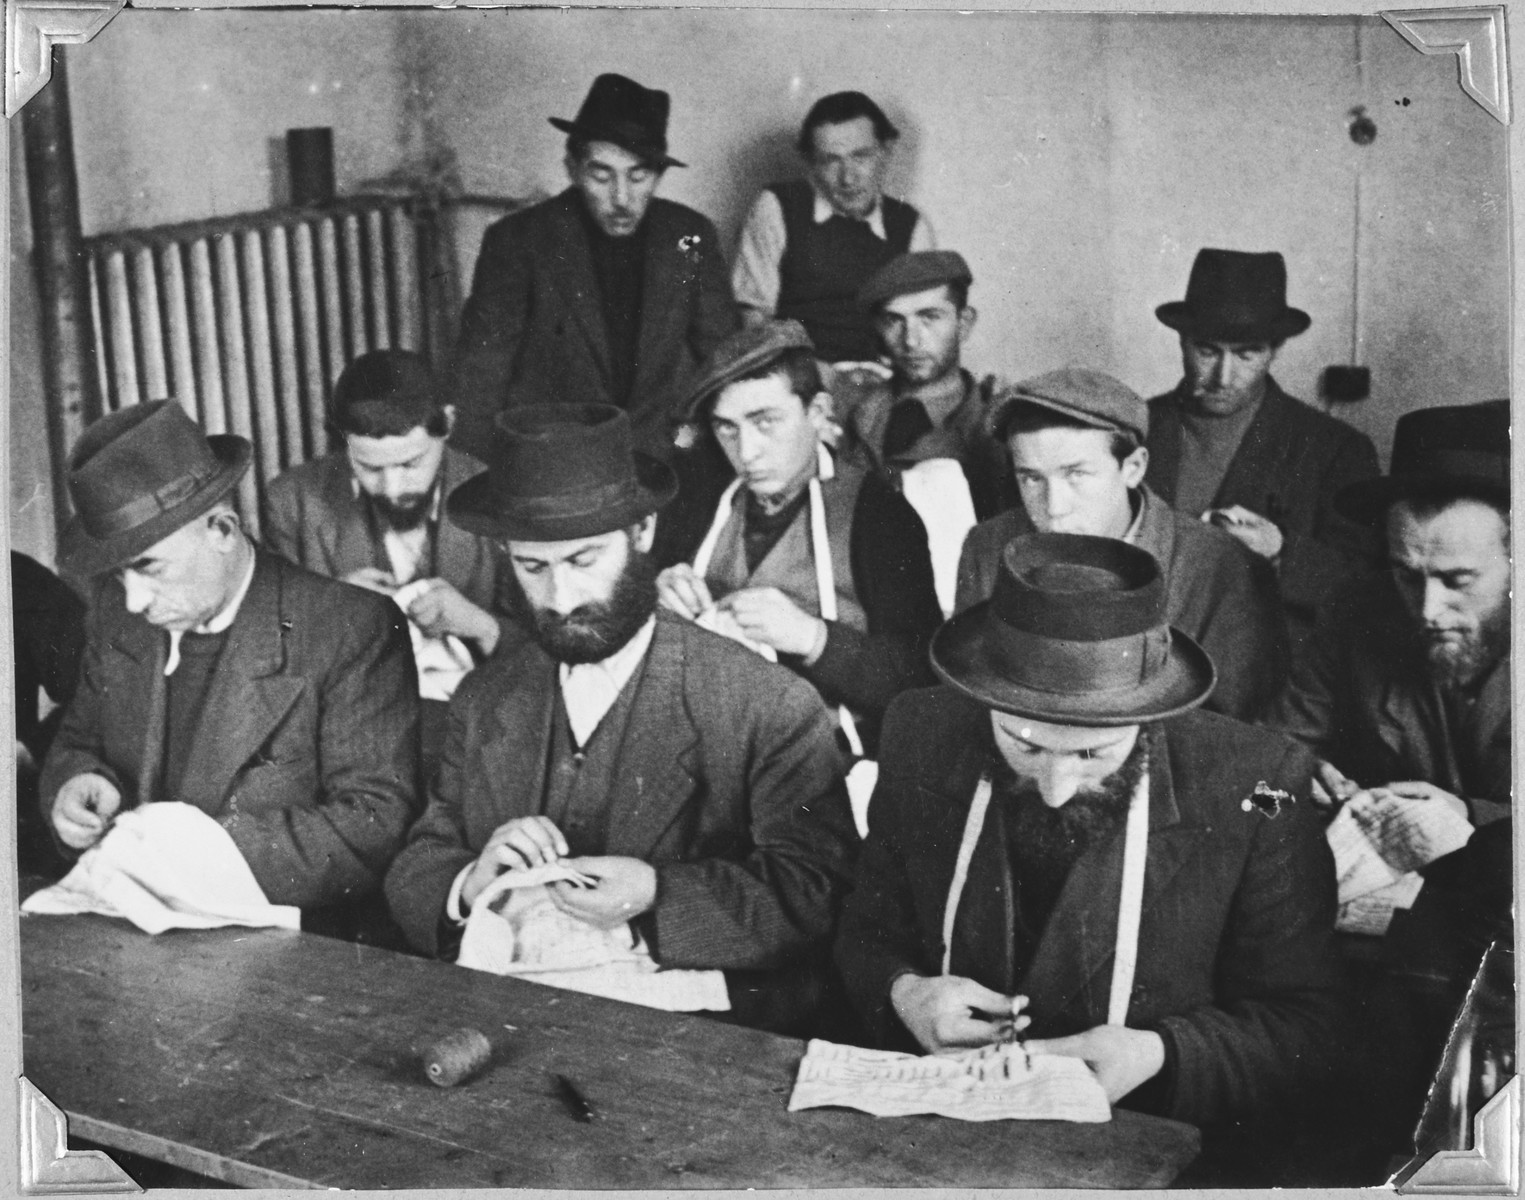 Orthodox Jewish men sew in the tailoring workshop of the Windsheim displaced persons' camp.